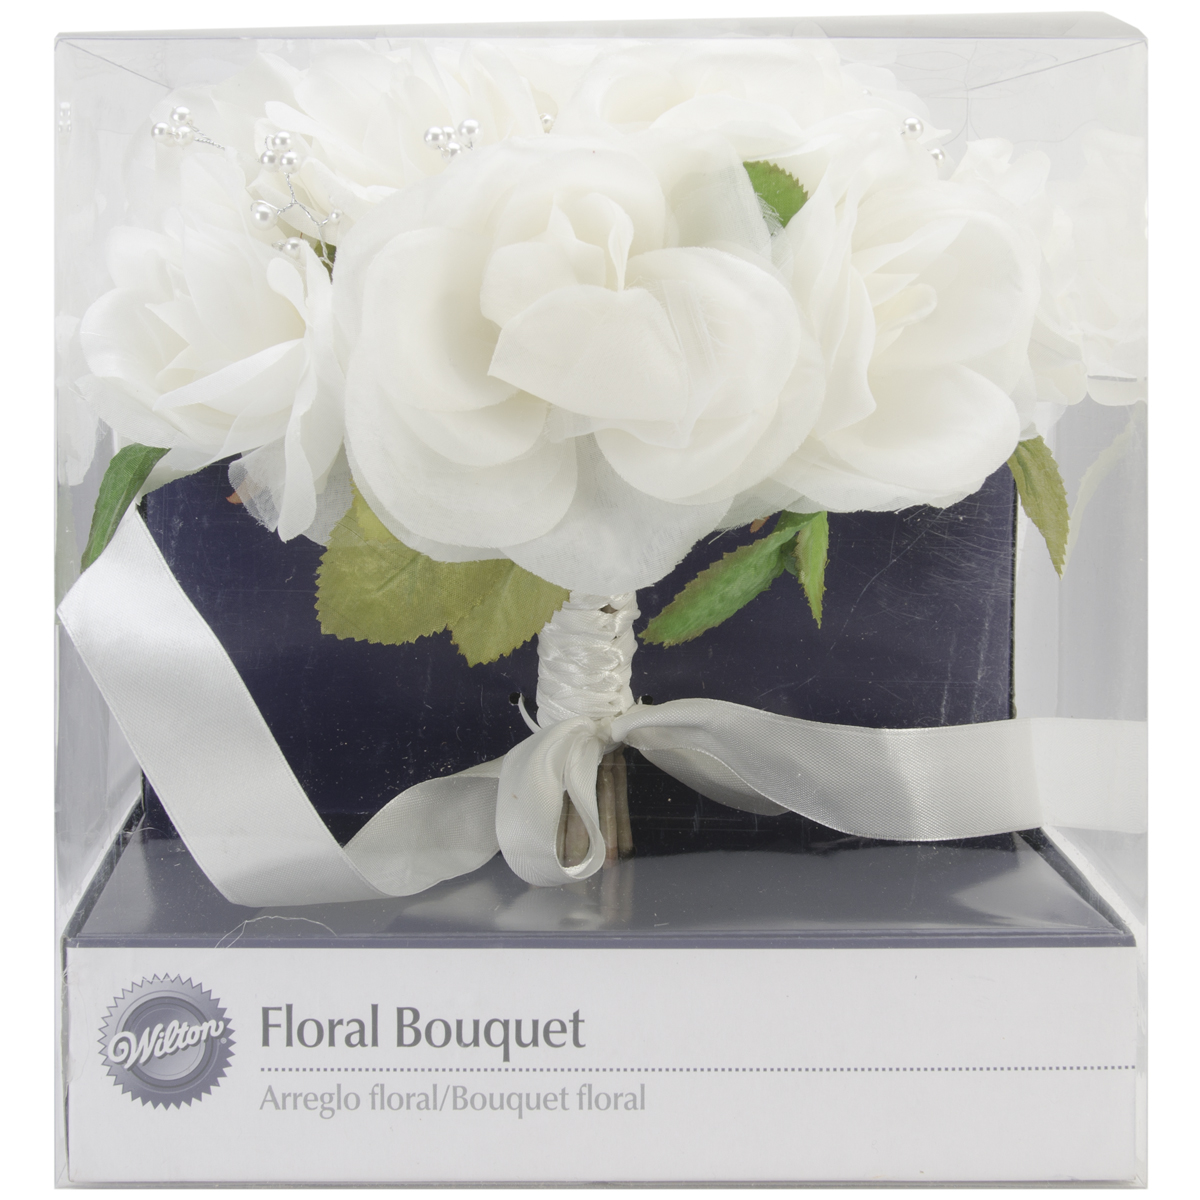 "Floral Bouquet 8.5"" DiameterFrench Rose"